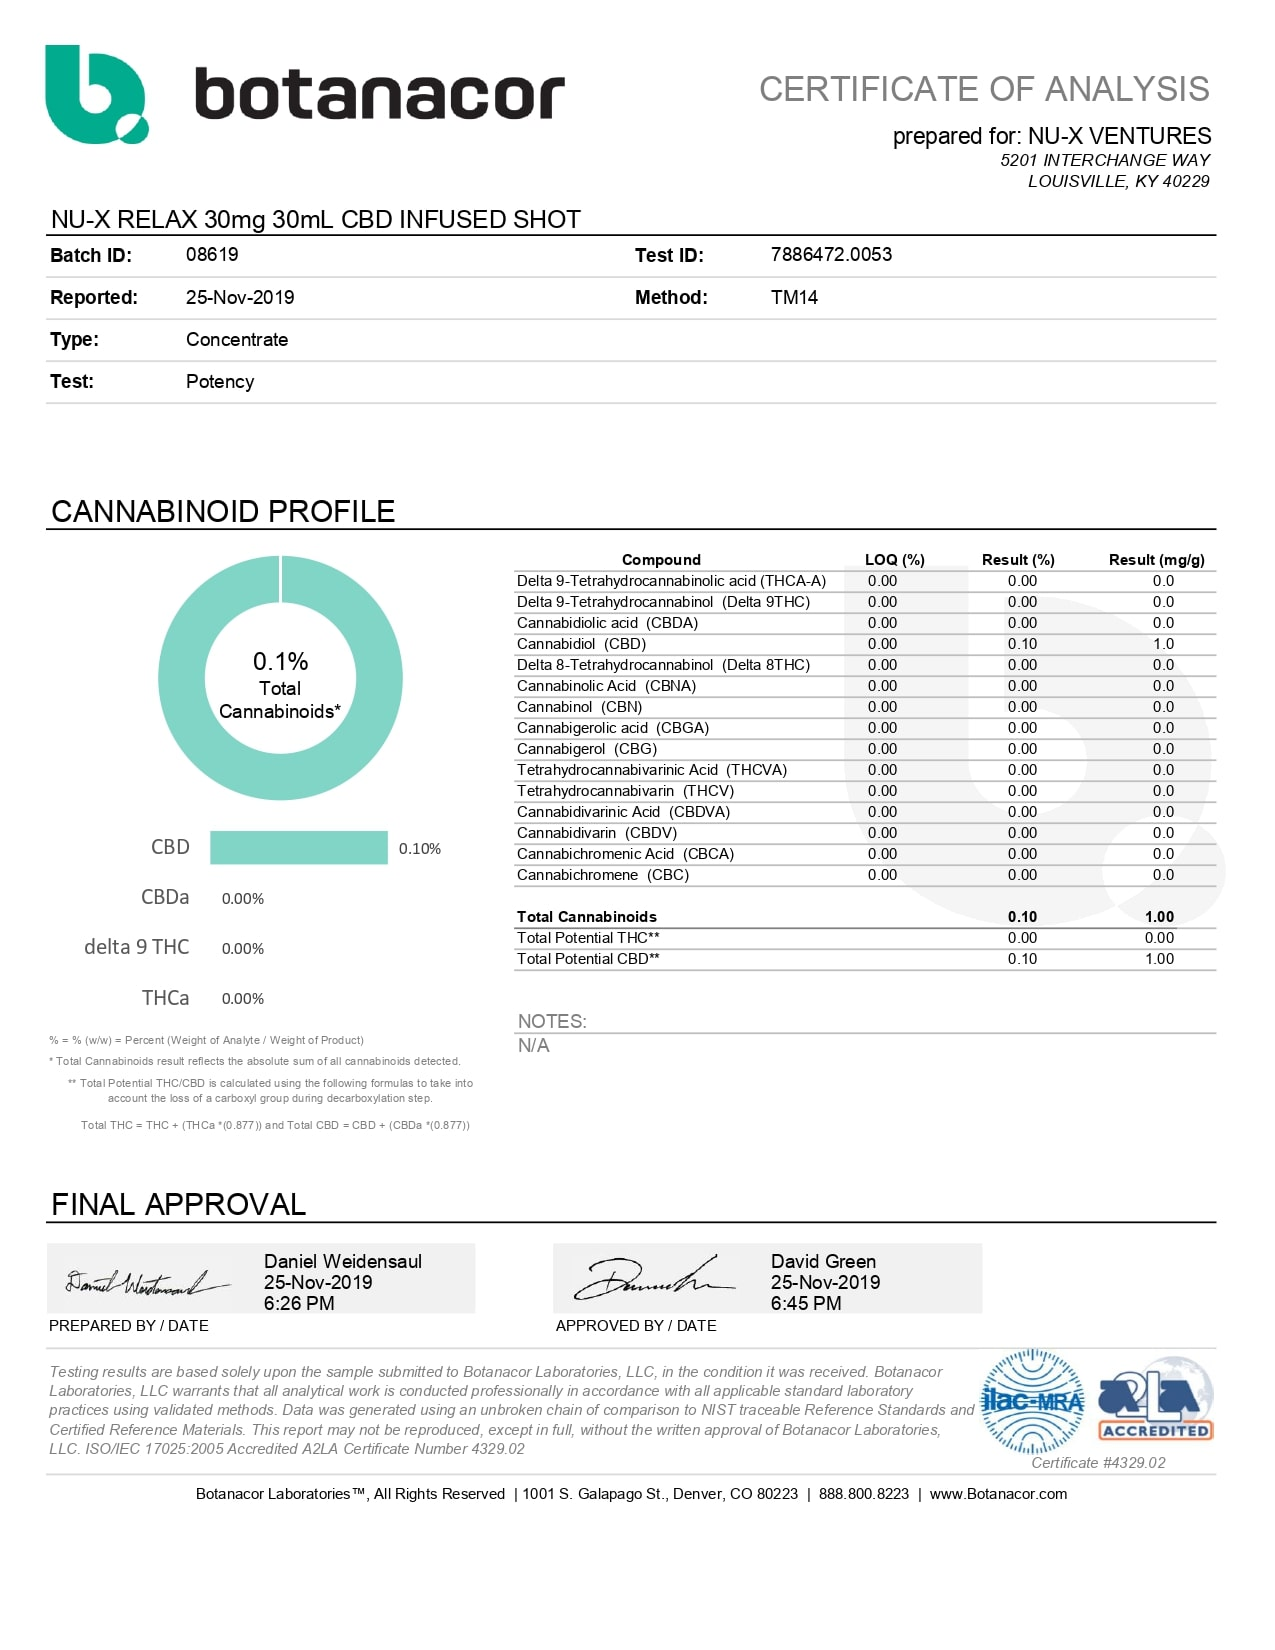 NU-X CBD Shot Lab Report Blueberry Relax 30mg